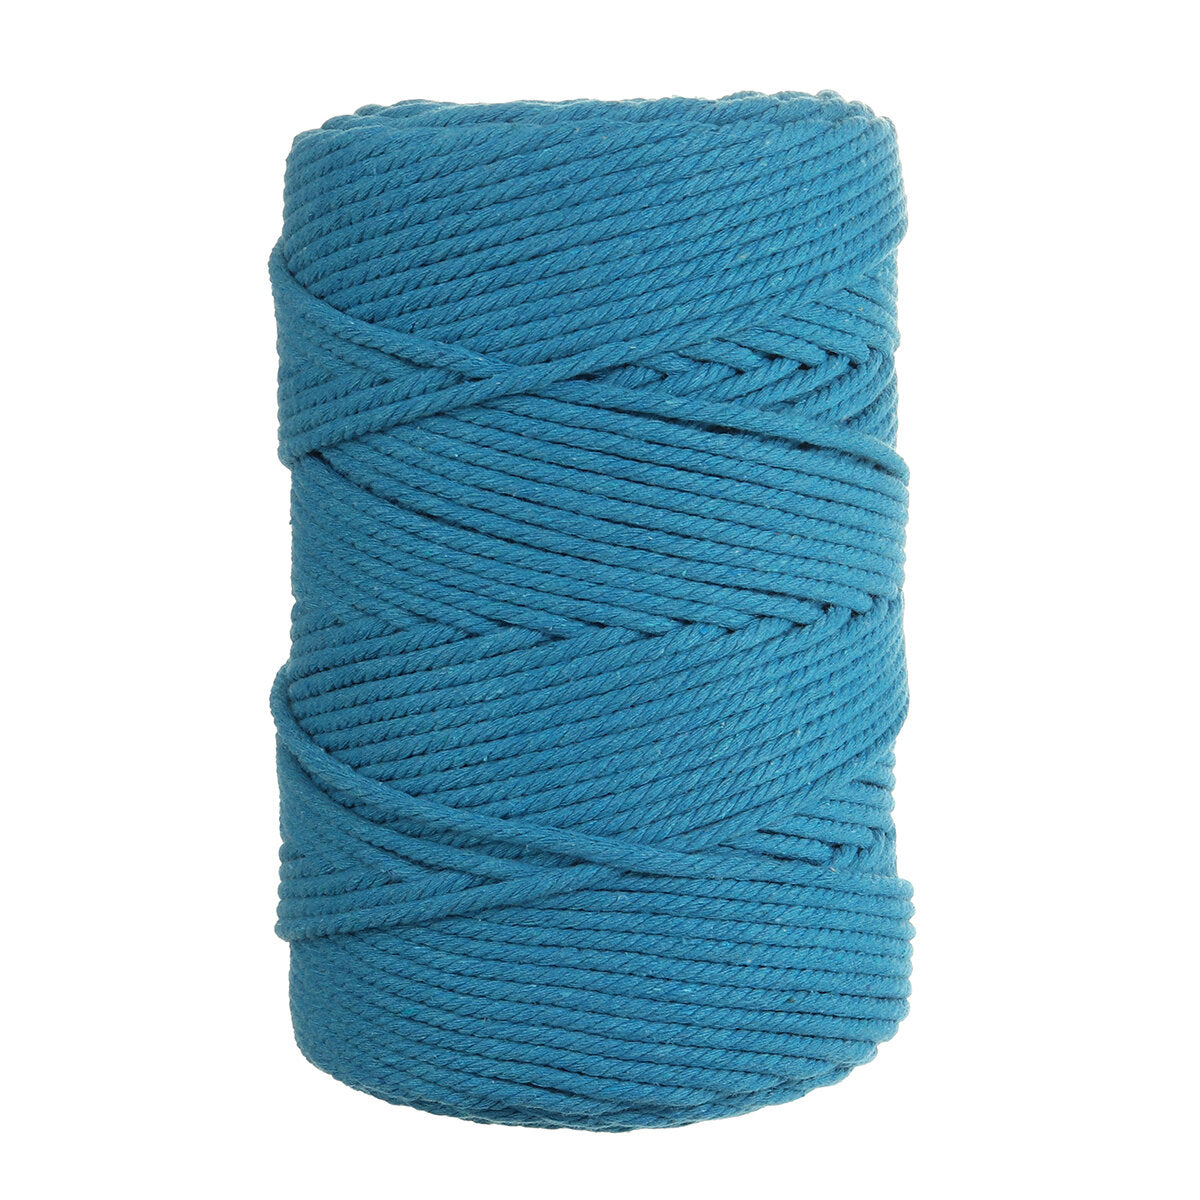 1Pc 200m(281.7 Yards)x4mm Color Cotton Cord Cotton Thread Braiding Cord DIY Crafts Knitting Plant Hangers Christmas Wedding Décor